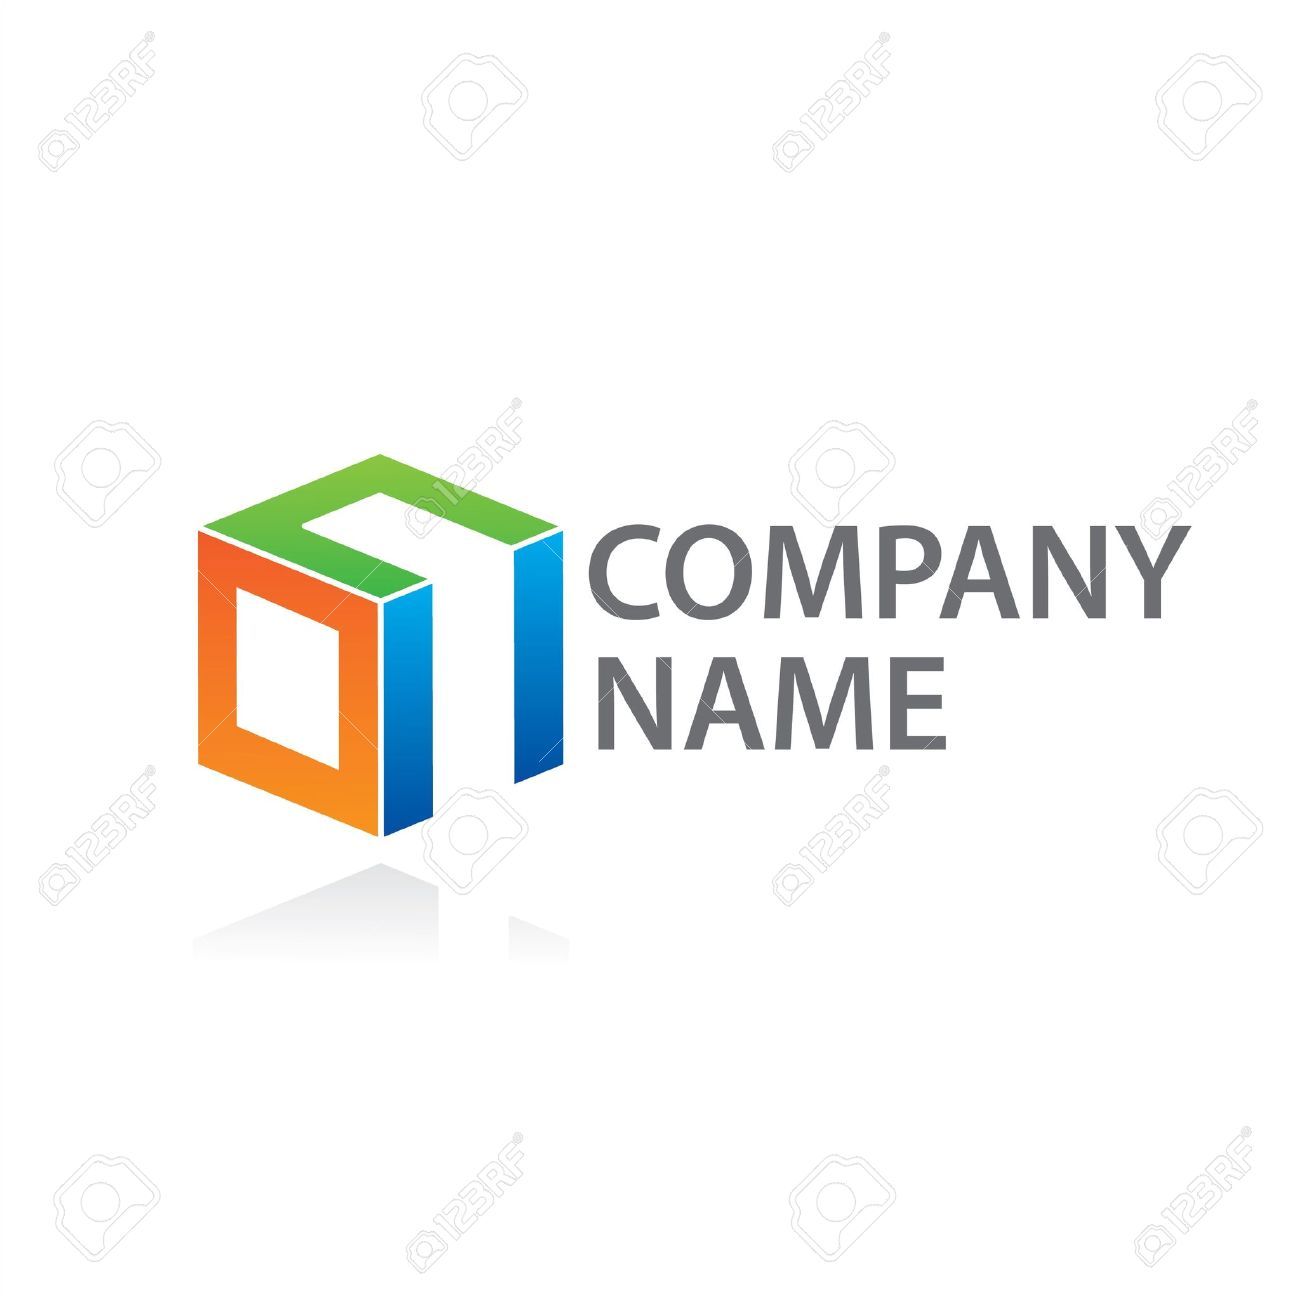 Template To Mark The Company. Put Your Company Name Rather Than ...